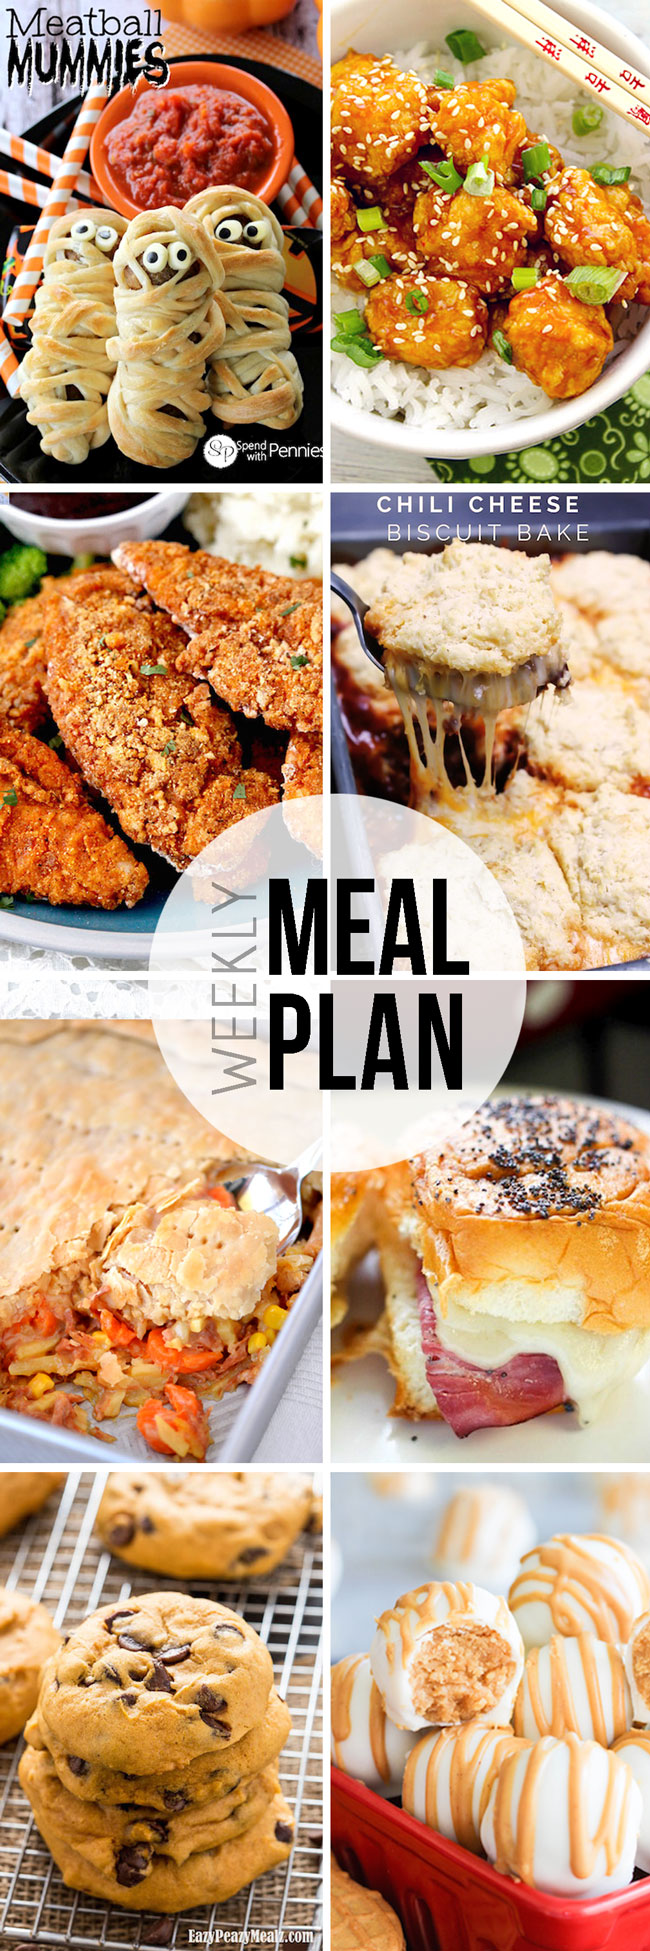 Take the thought and hassle out of meal planning with this compiled weekly meal plan, with 6 dinners, a Saturday morning breakfast idea, and desserts!